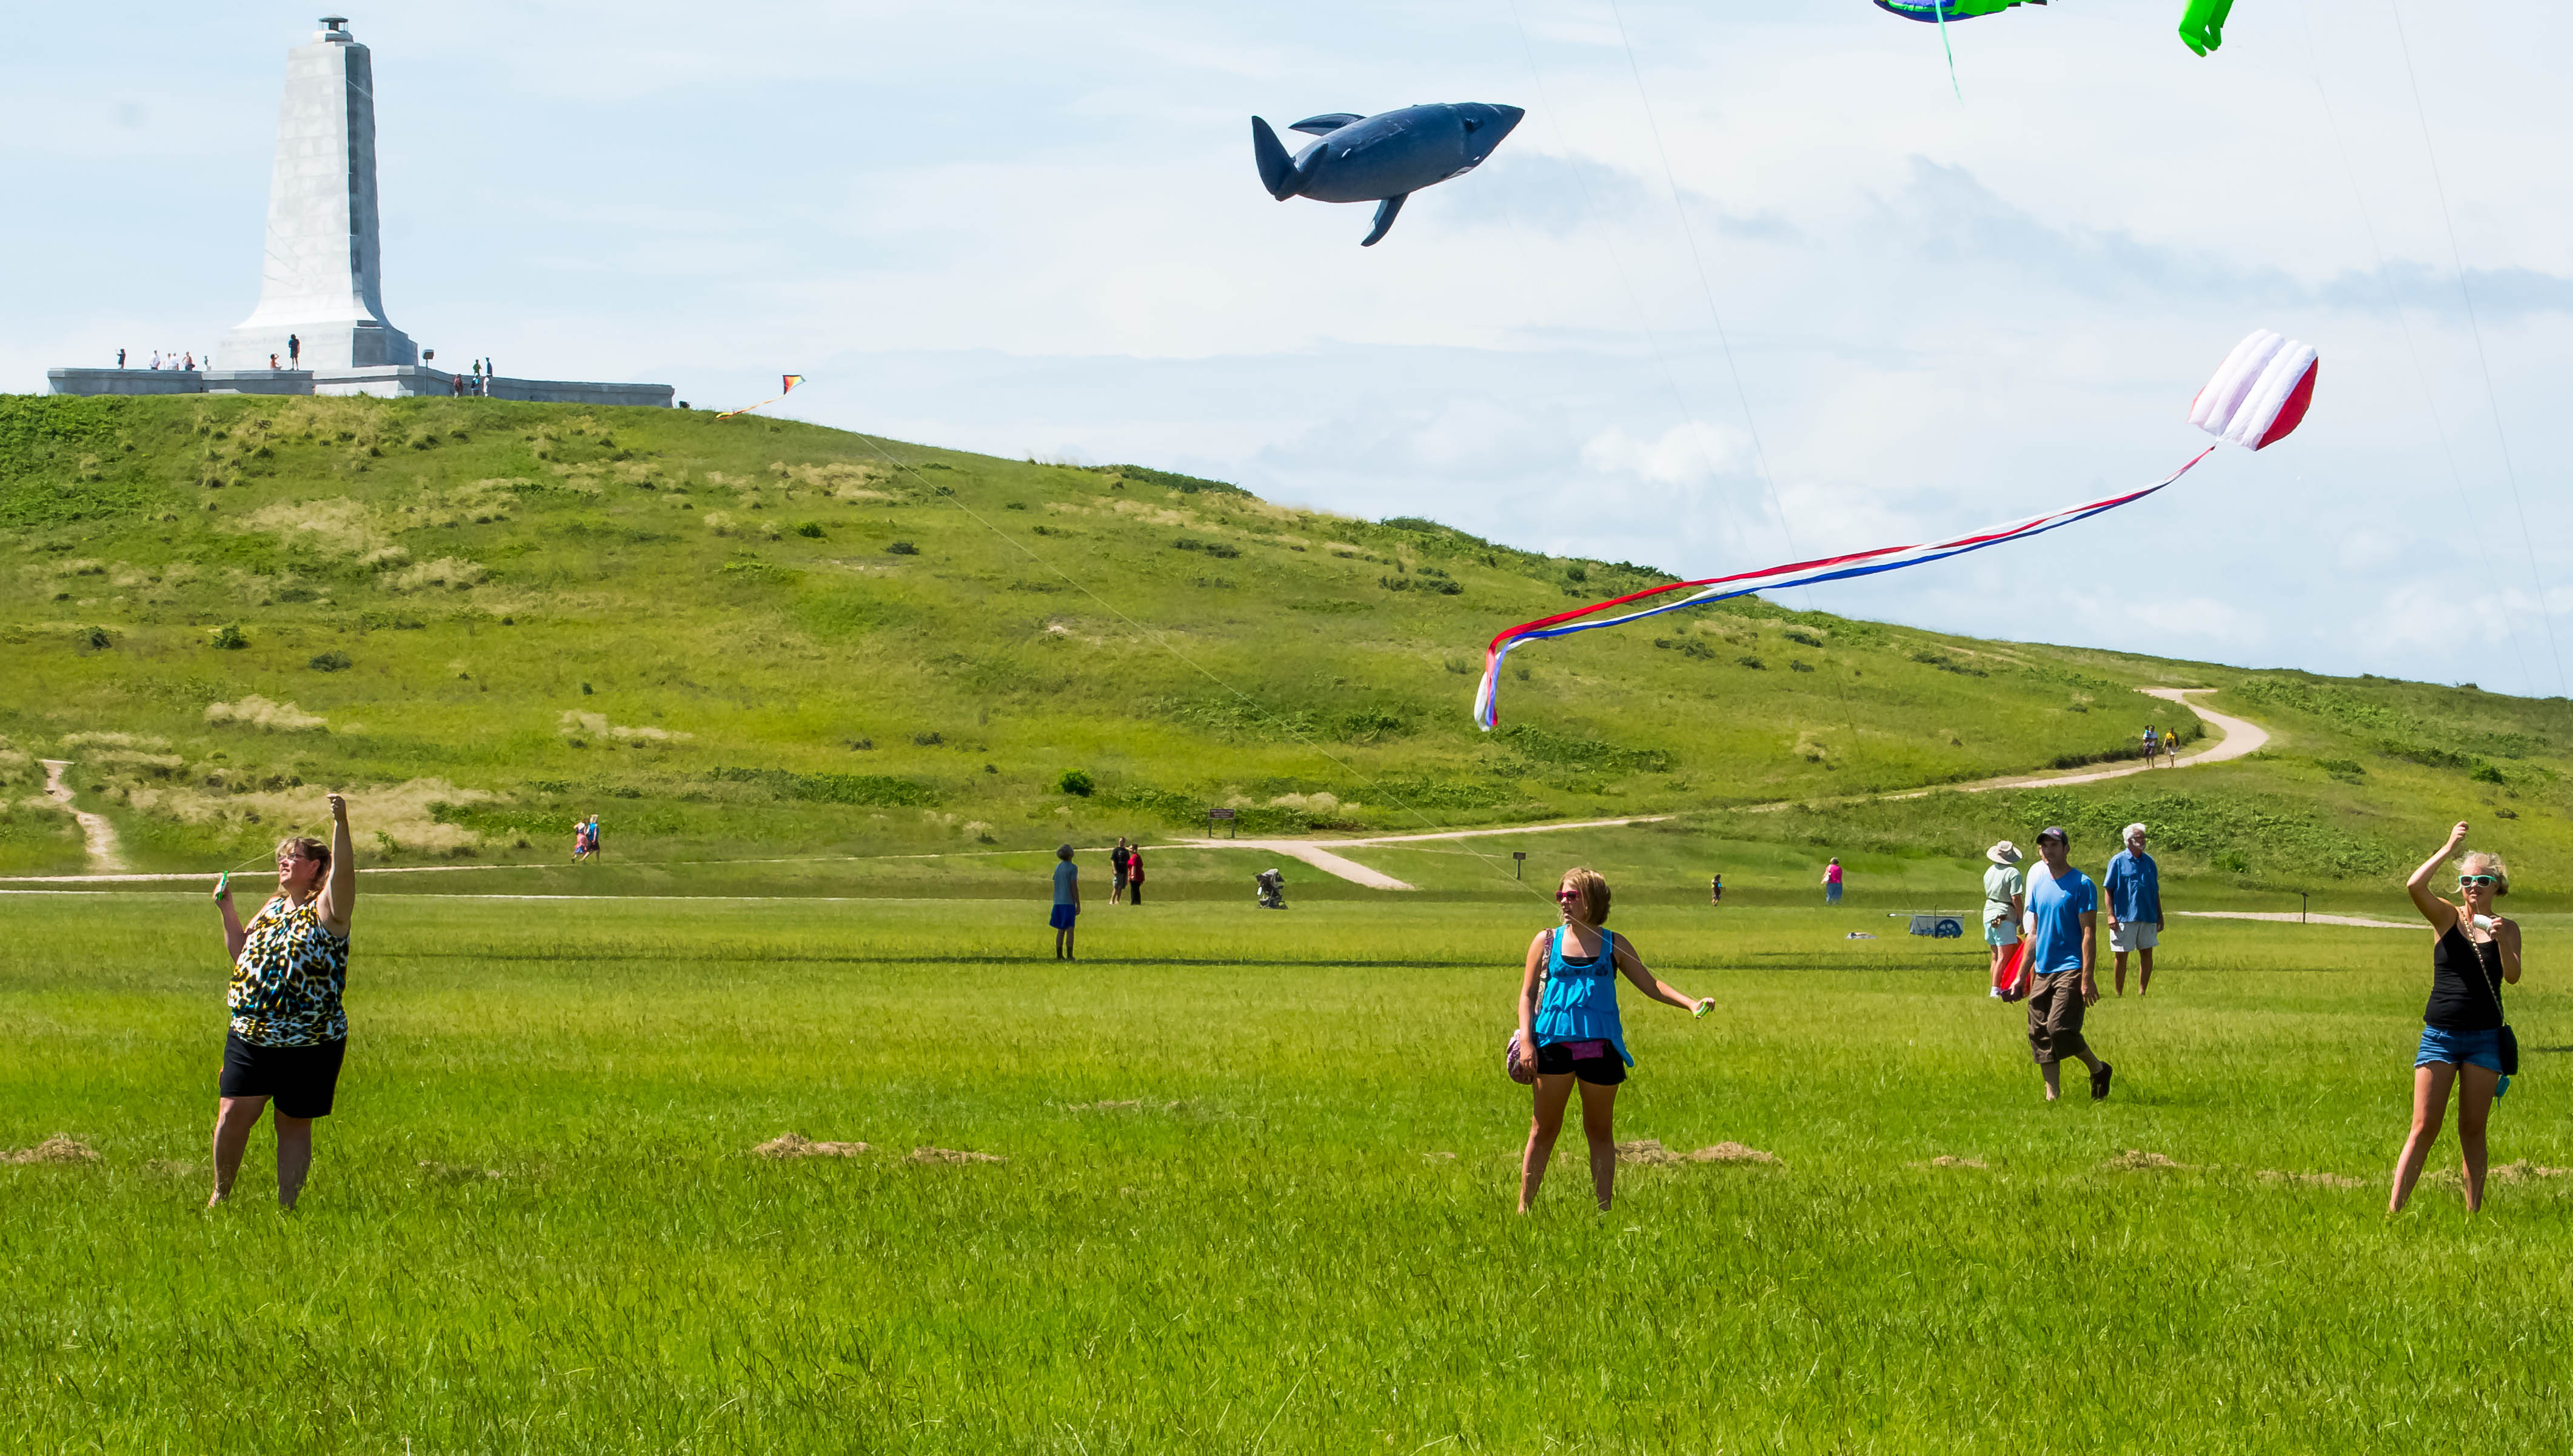 Fly Together With Kitty Hawk Kites